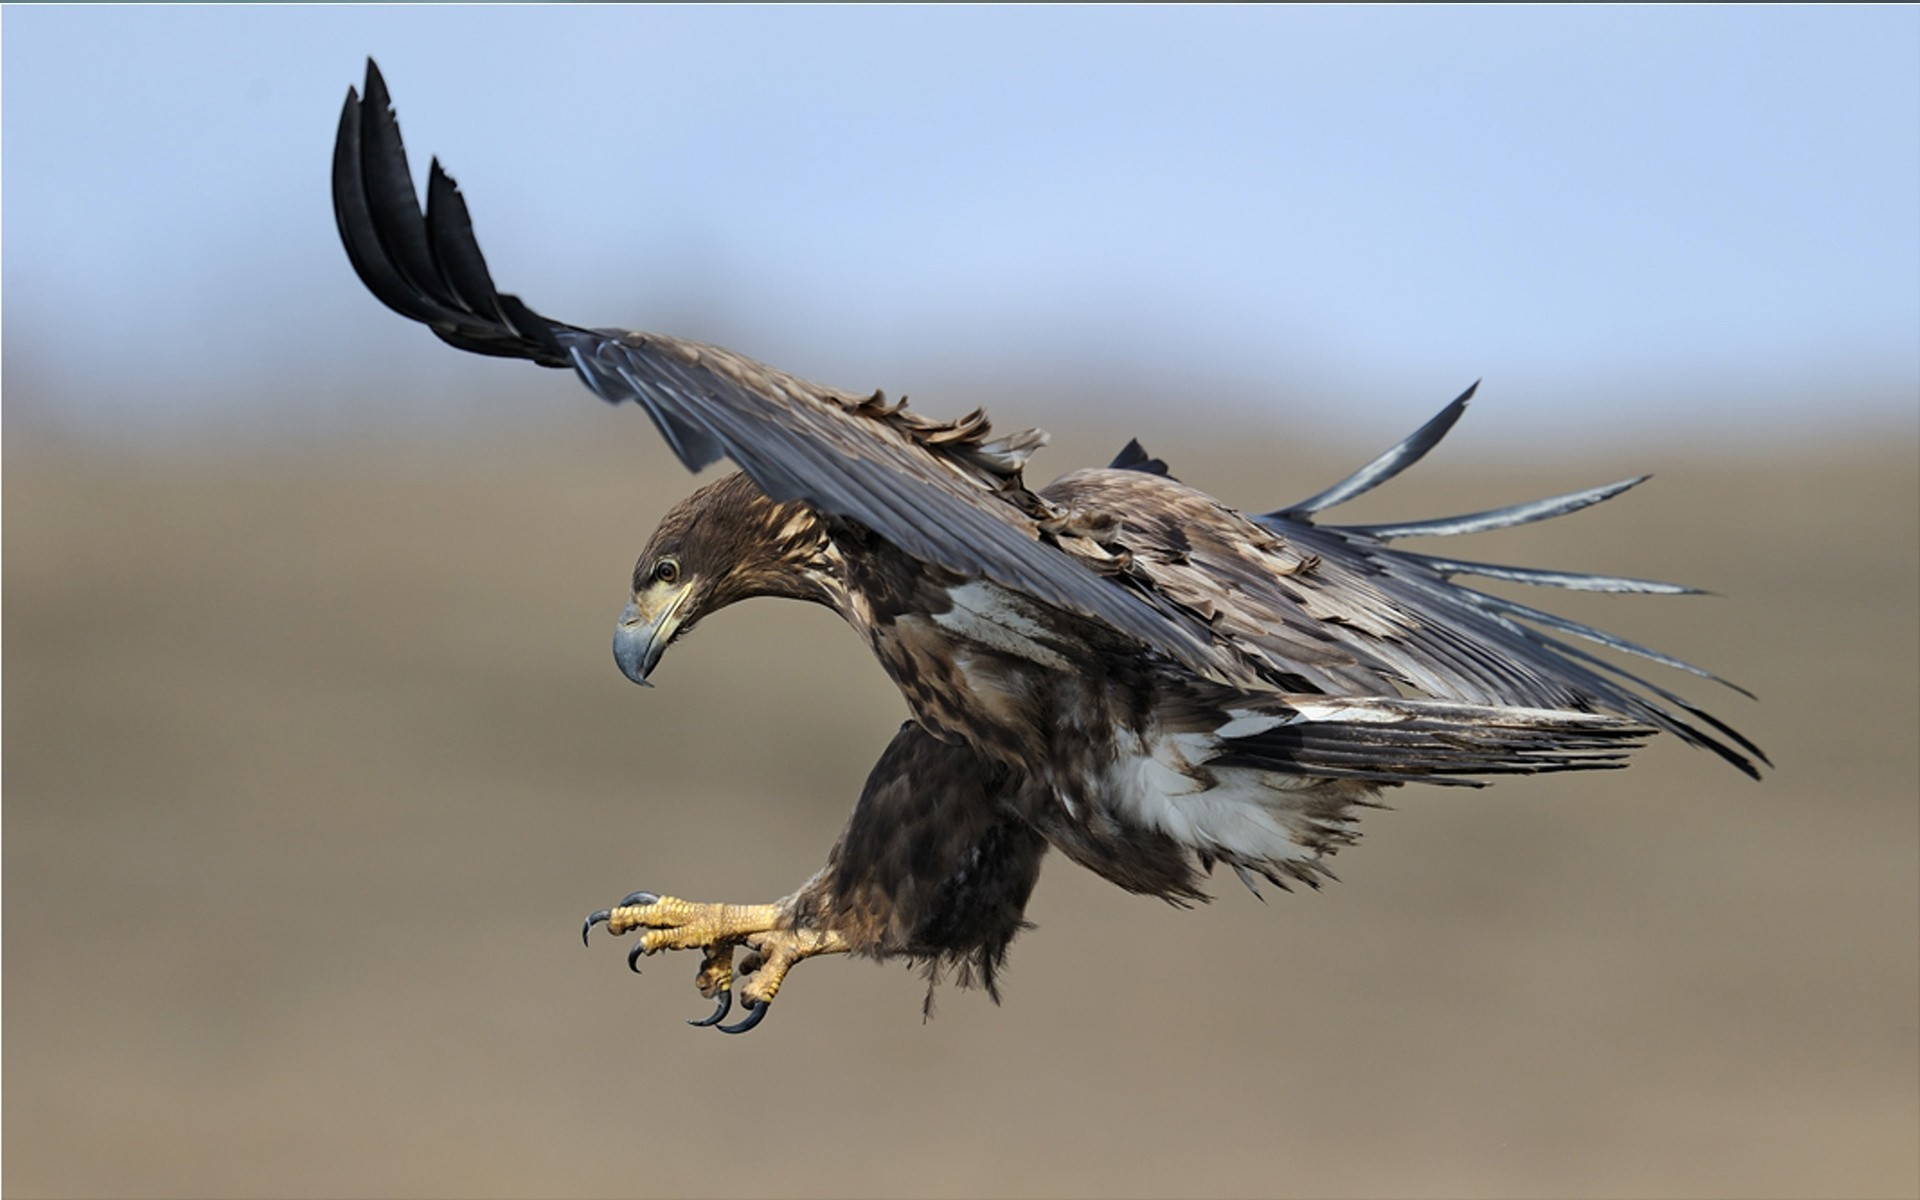 The eagle on the hunt, photo wallpaper high resolution